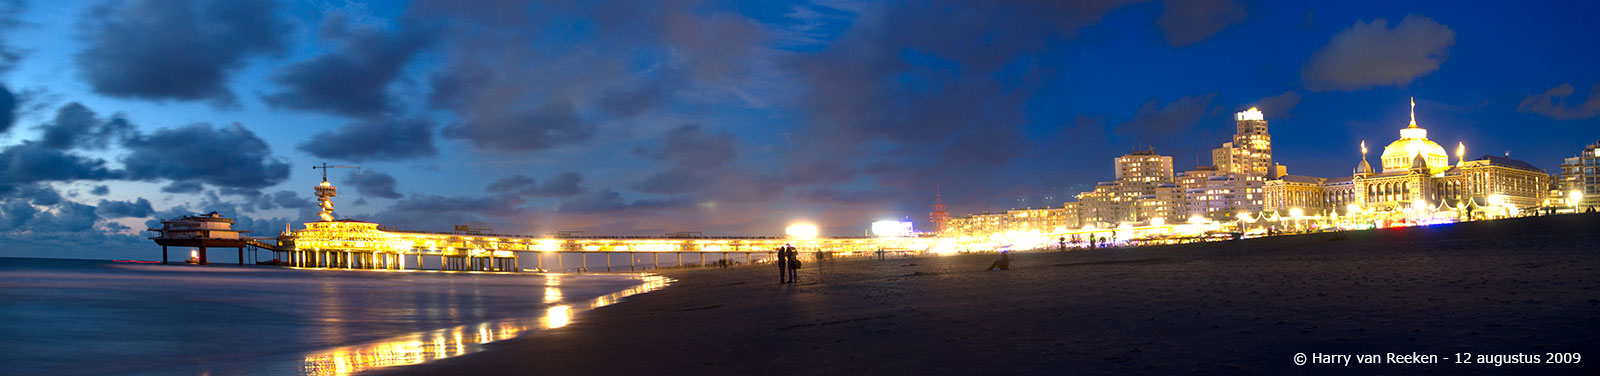 panorama1-scheveningen-avondopname-(1-of-4)-Edit